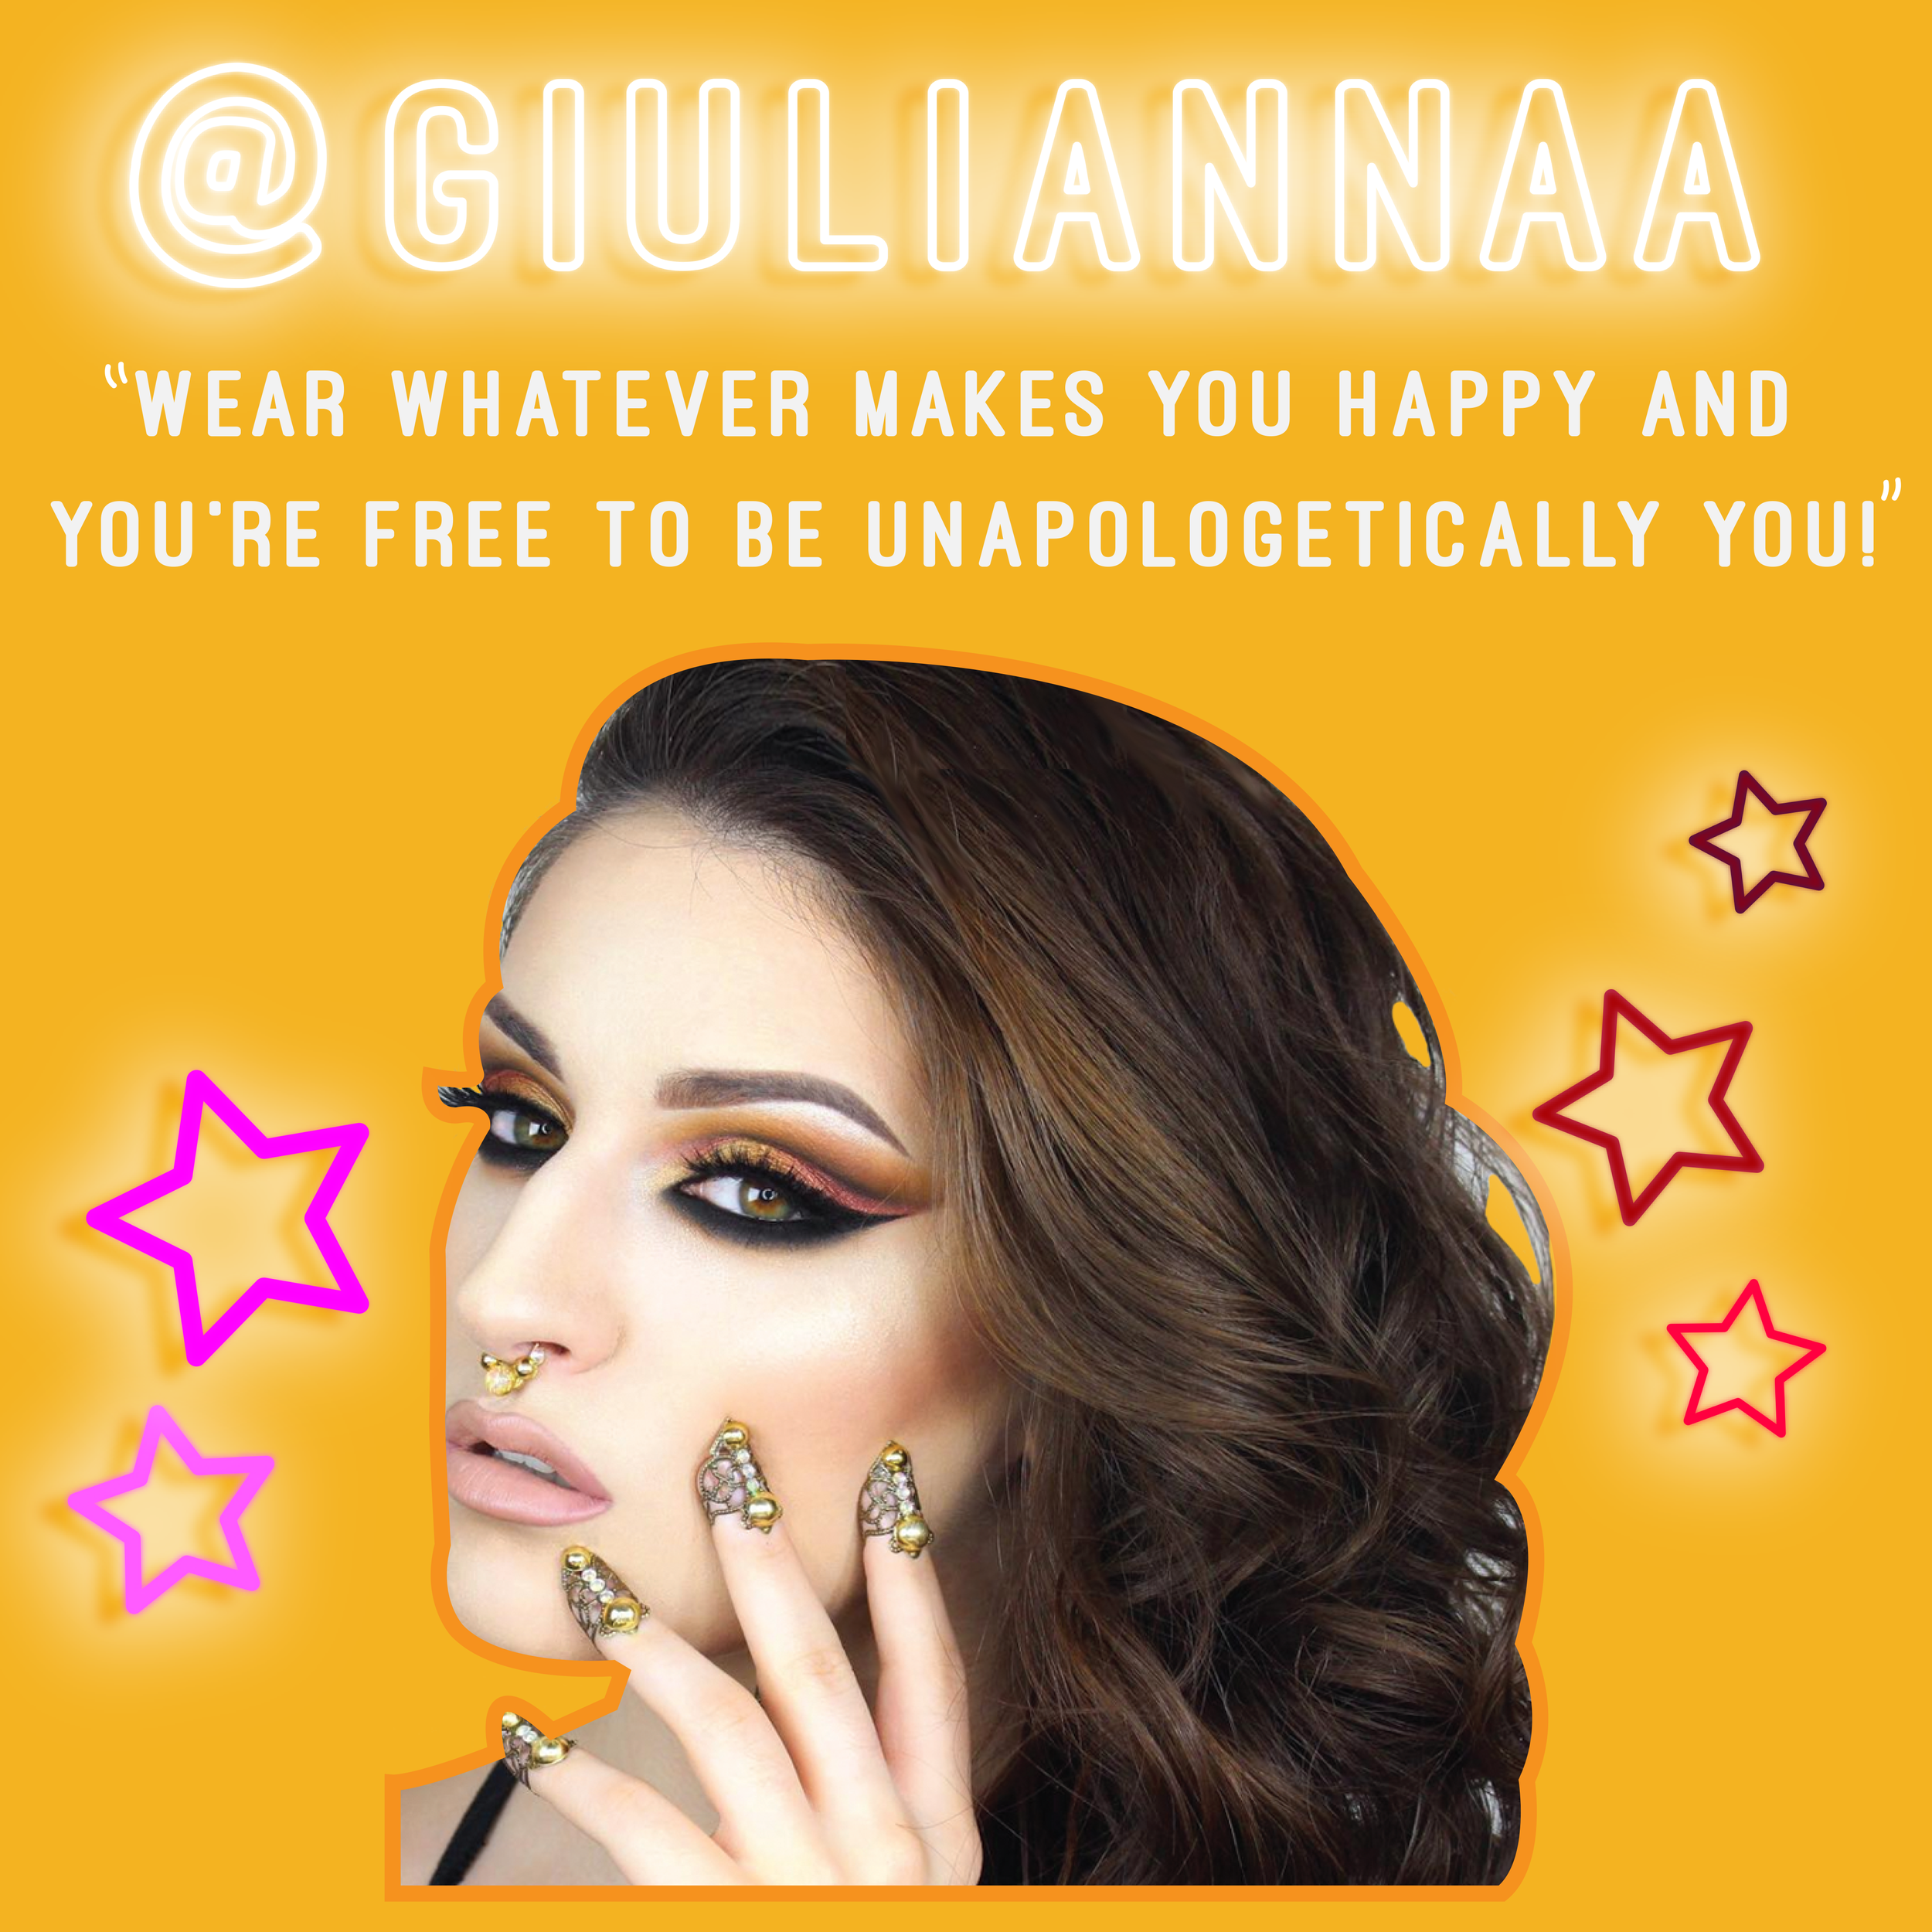 """""""Wear whatever makes you happy, it's your face! You're free to be unapologetically you! Makeup is an art form and a way for you to express yourself. Don't let anyone tell you what's """"wearable."""" Be bold, be colorful, be natural. Do whatever makes you feel good!""""- @Giuliannaa"""